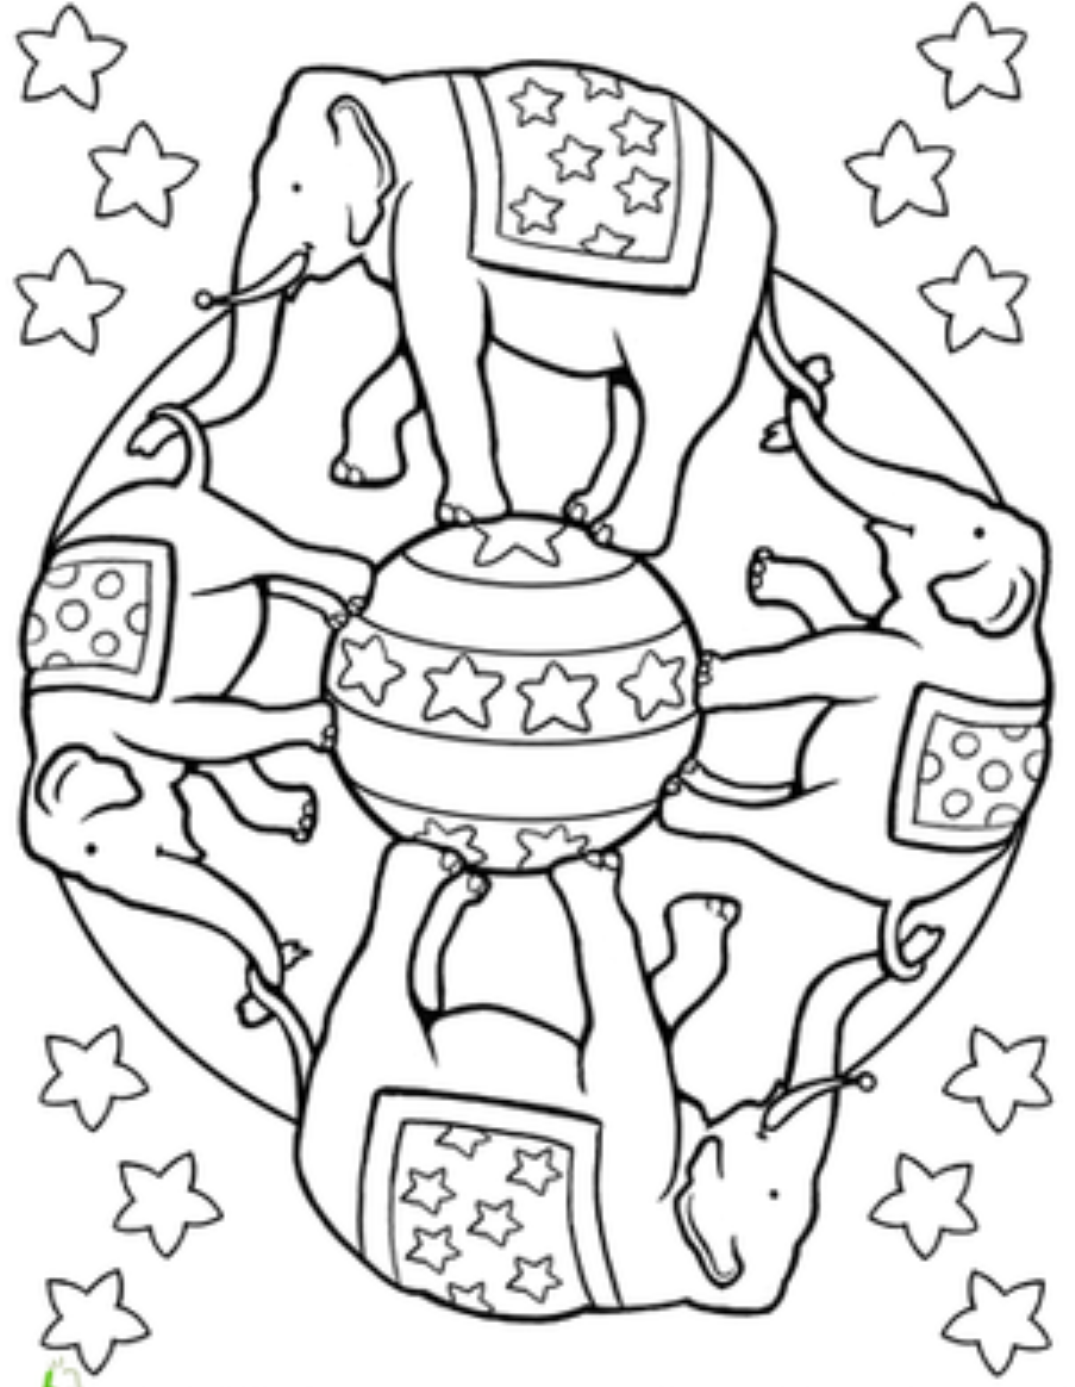 mandala elephant coloring pages easy - photo#25